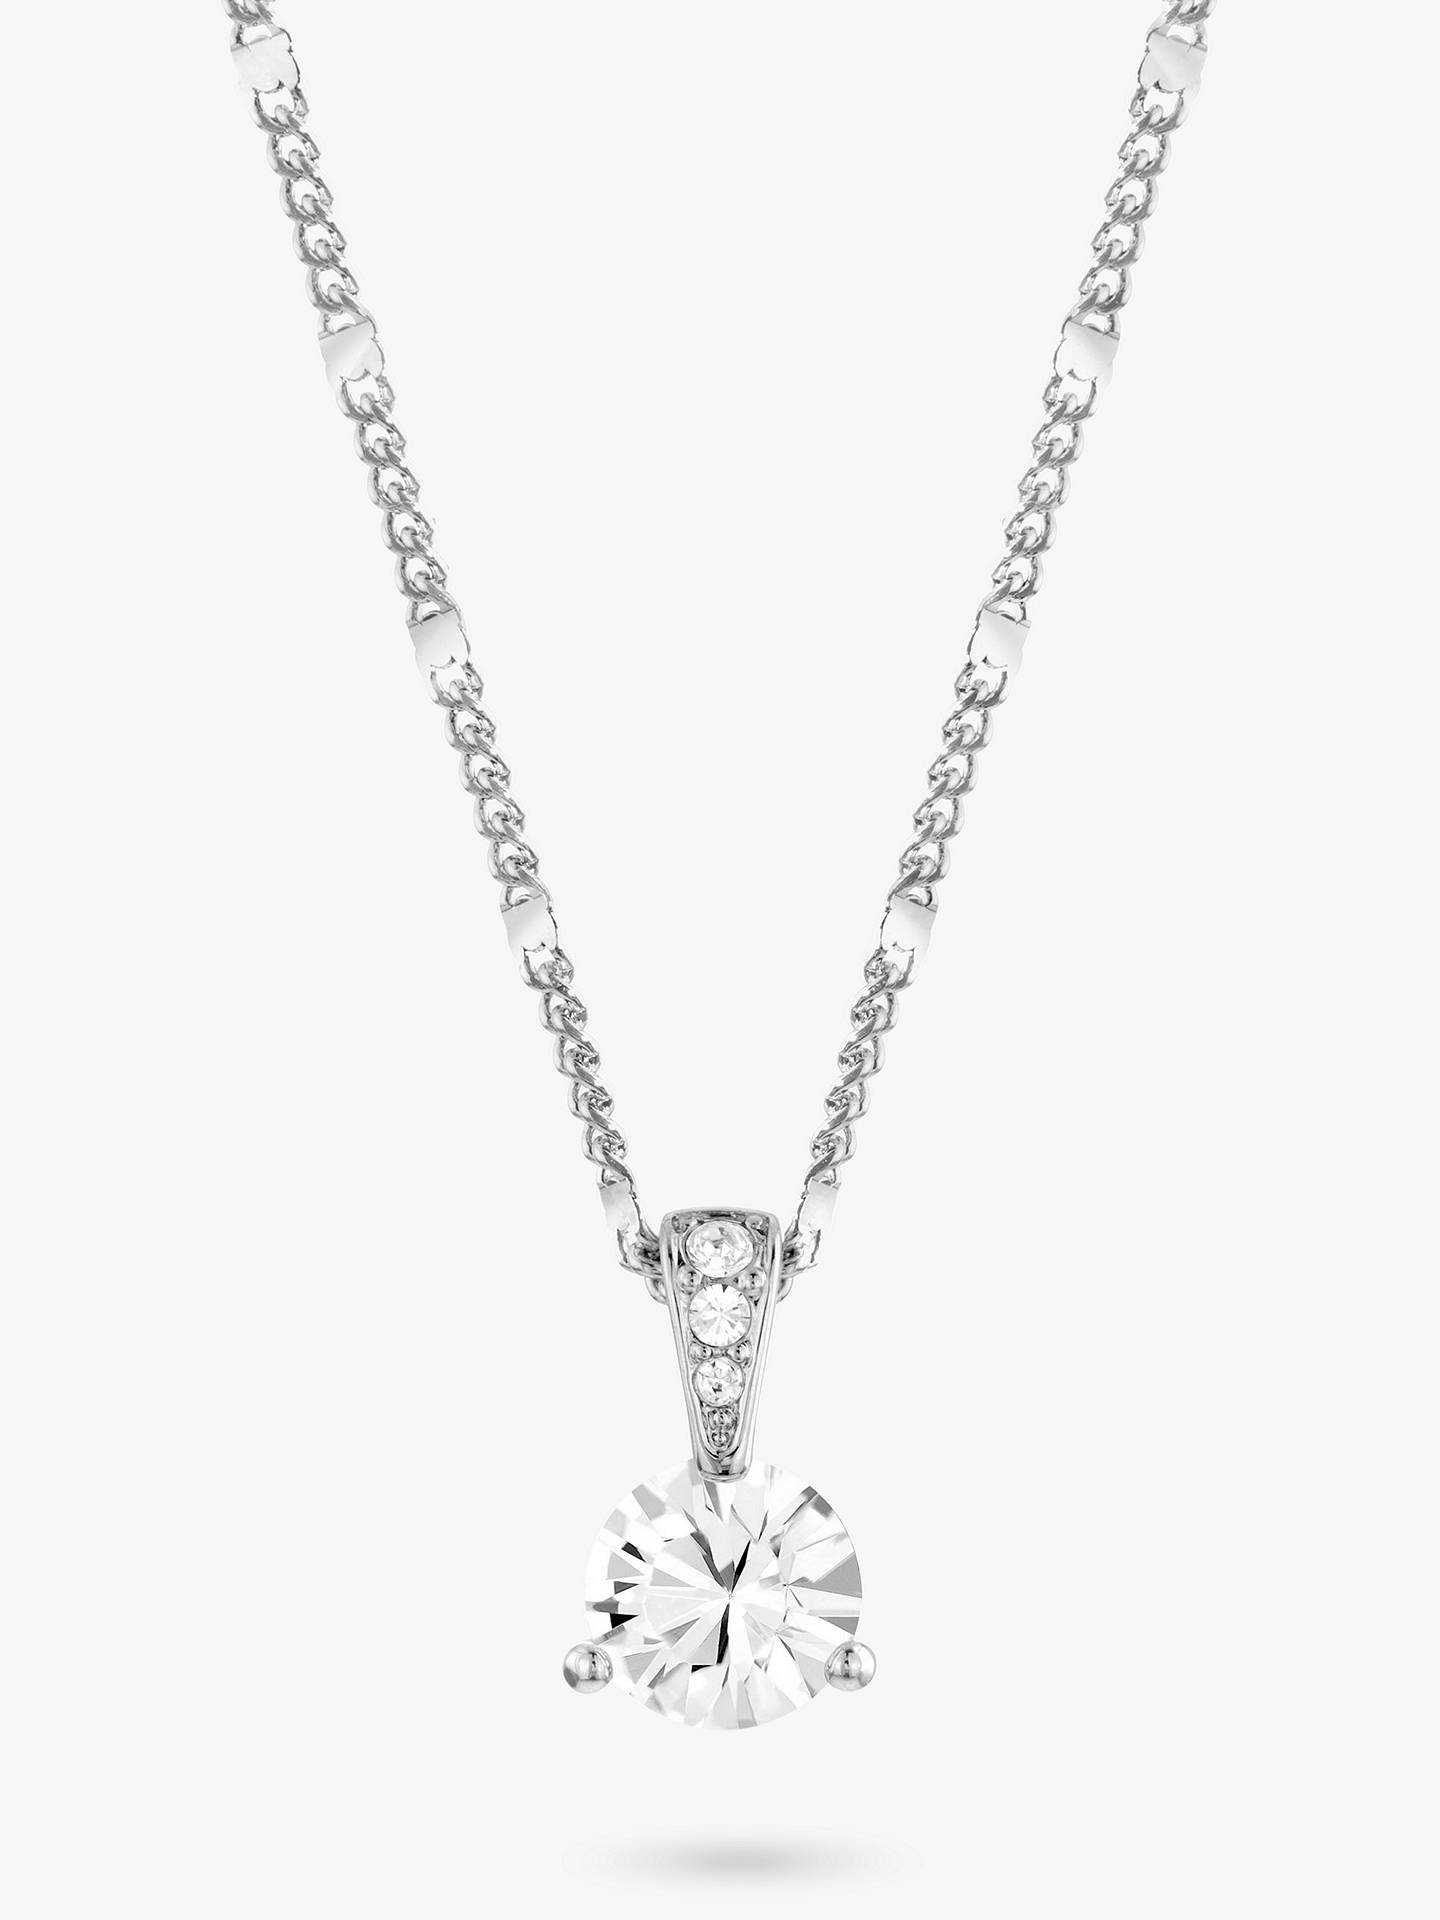 afb04b20829 Buy Swarovski Solitaire Round Crystal Pendant Necklace, Silver Online at  johnlewis.com ...